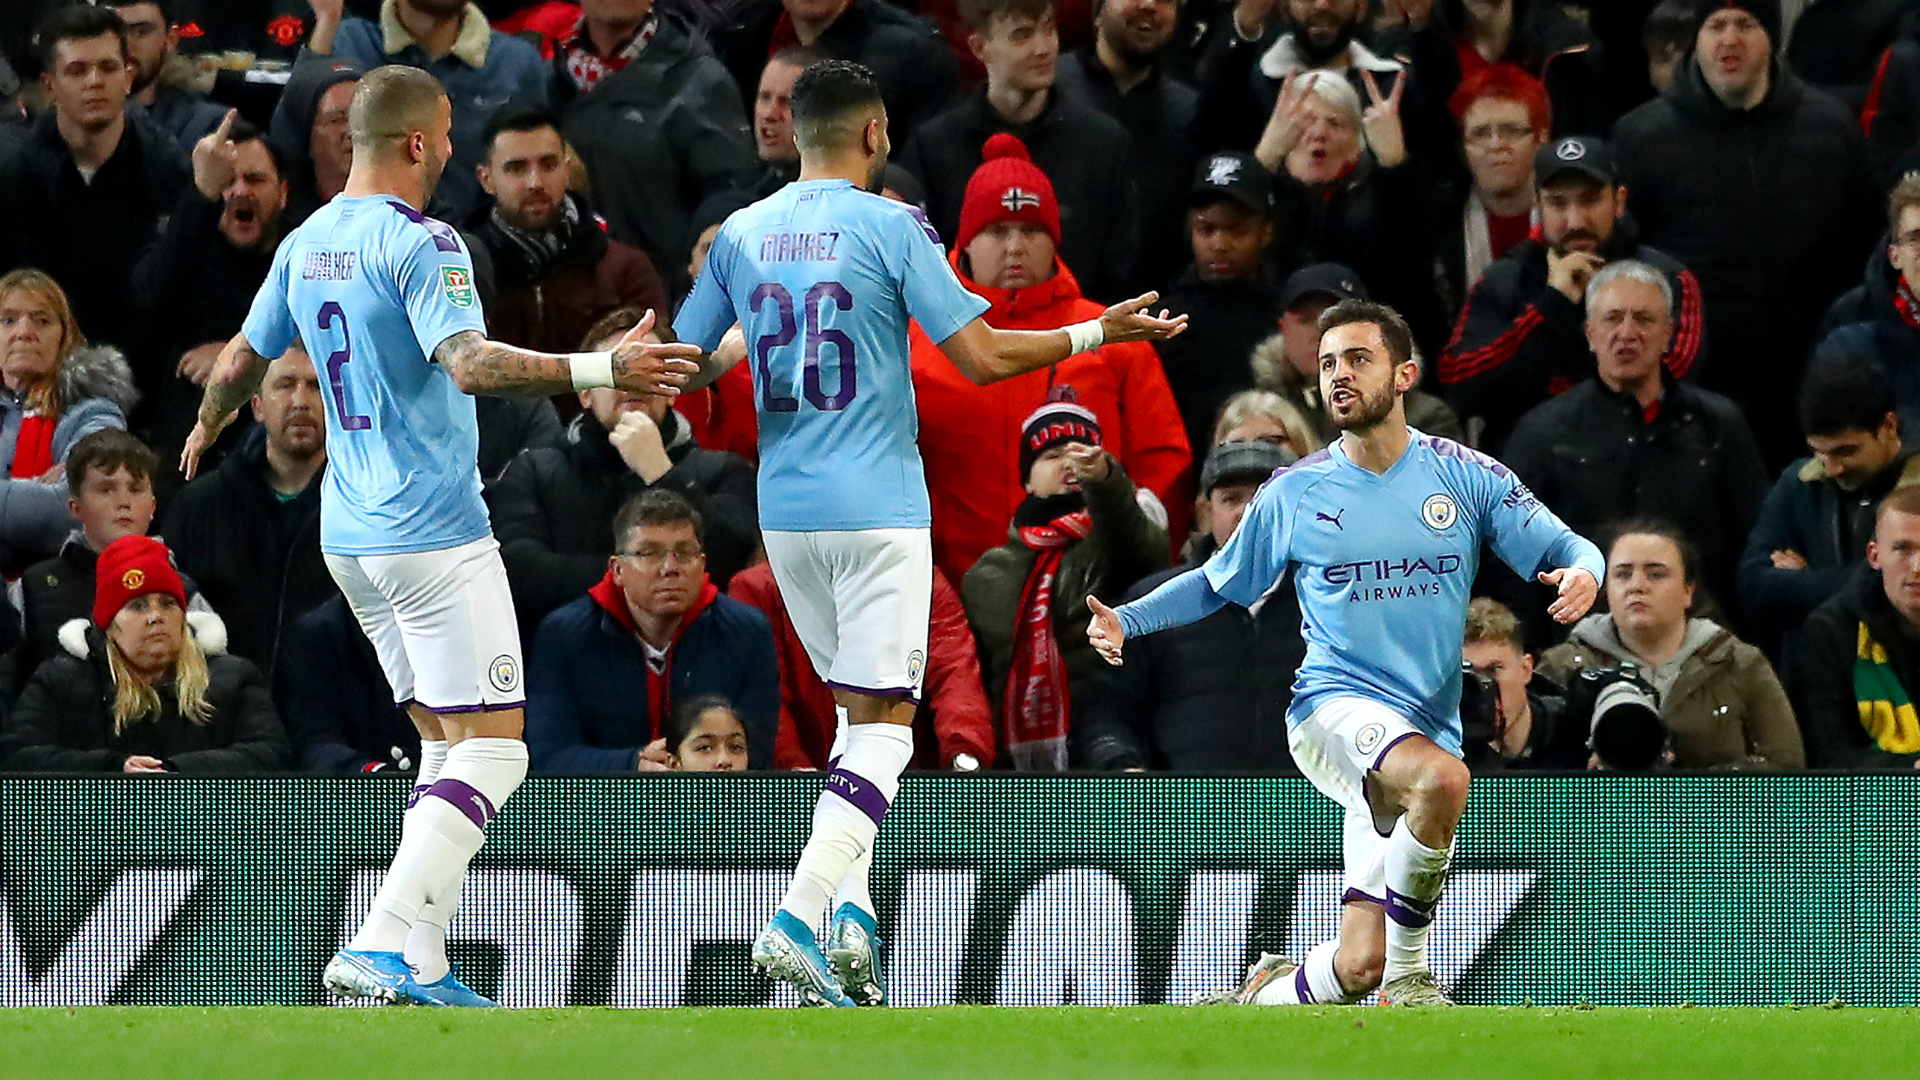 Manchester United 1-3 Manchester City: Final in sight for Guardiola as Bernardo Silva inspires victory